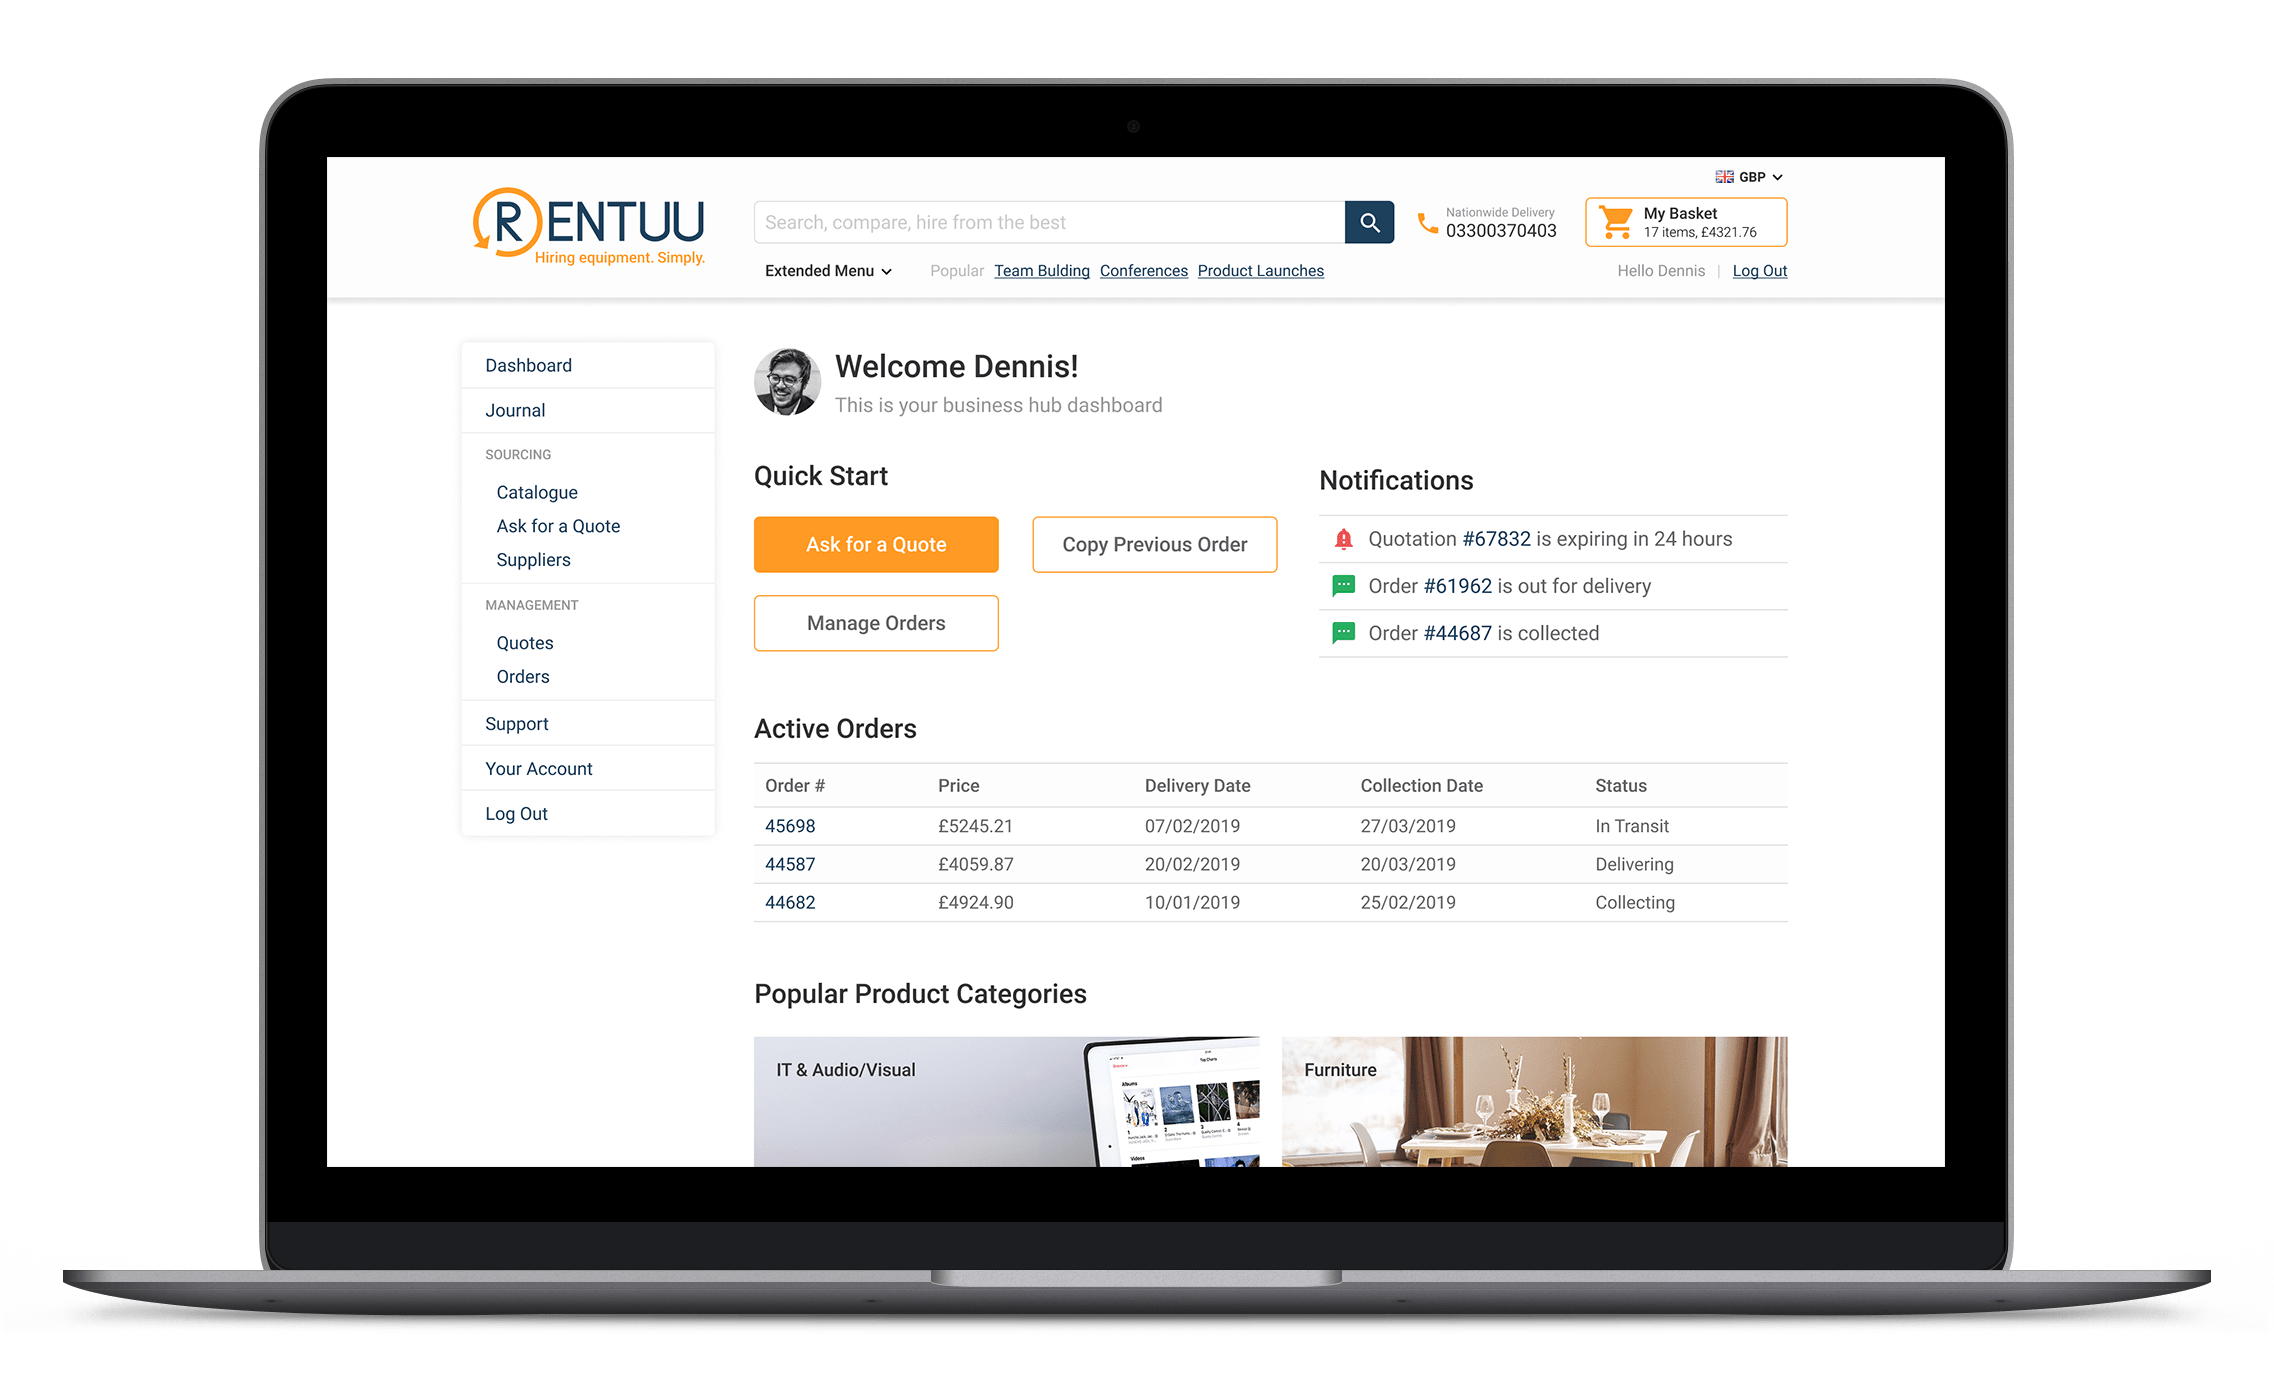 Rentuu Business Hub